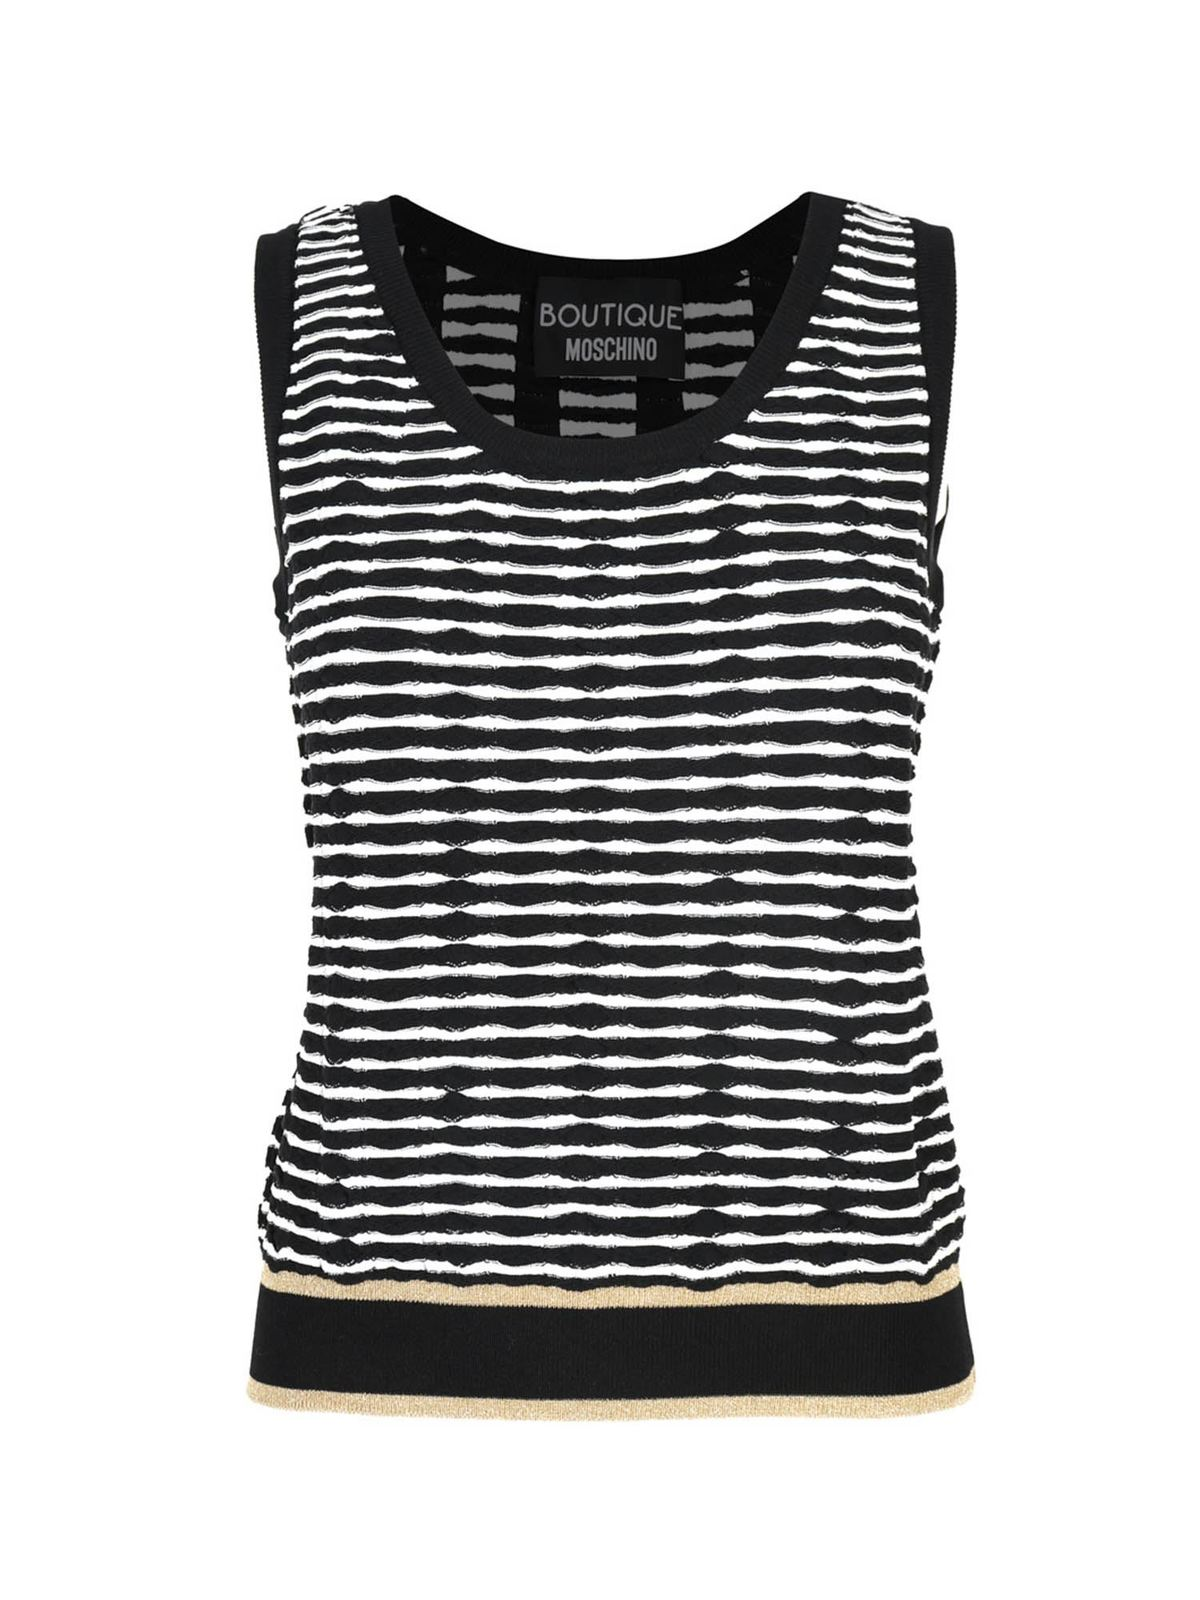 Moschino Boutique Tops STRIPED STRETCH TOP IN WHITE AND BLACK